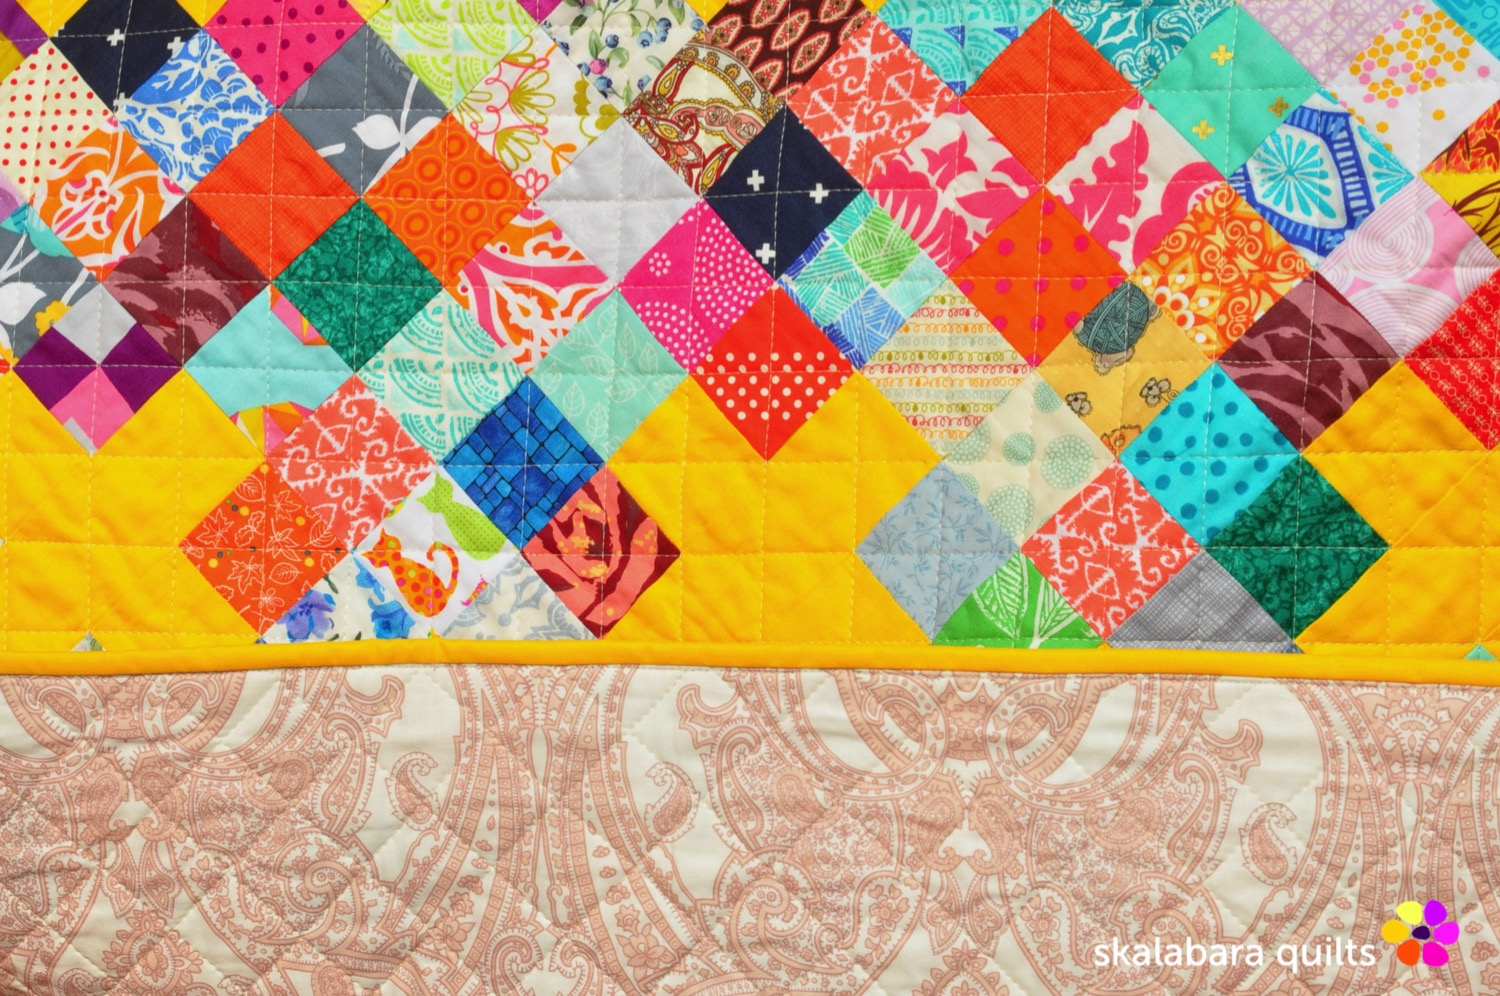 scrappy checkered quilt with crosses binding - skalabara quilts